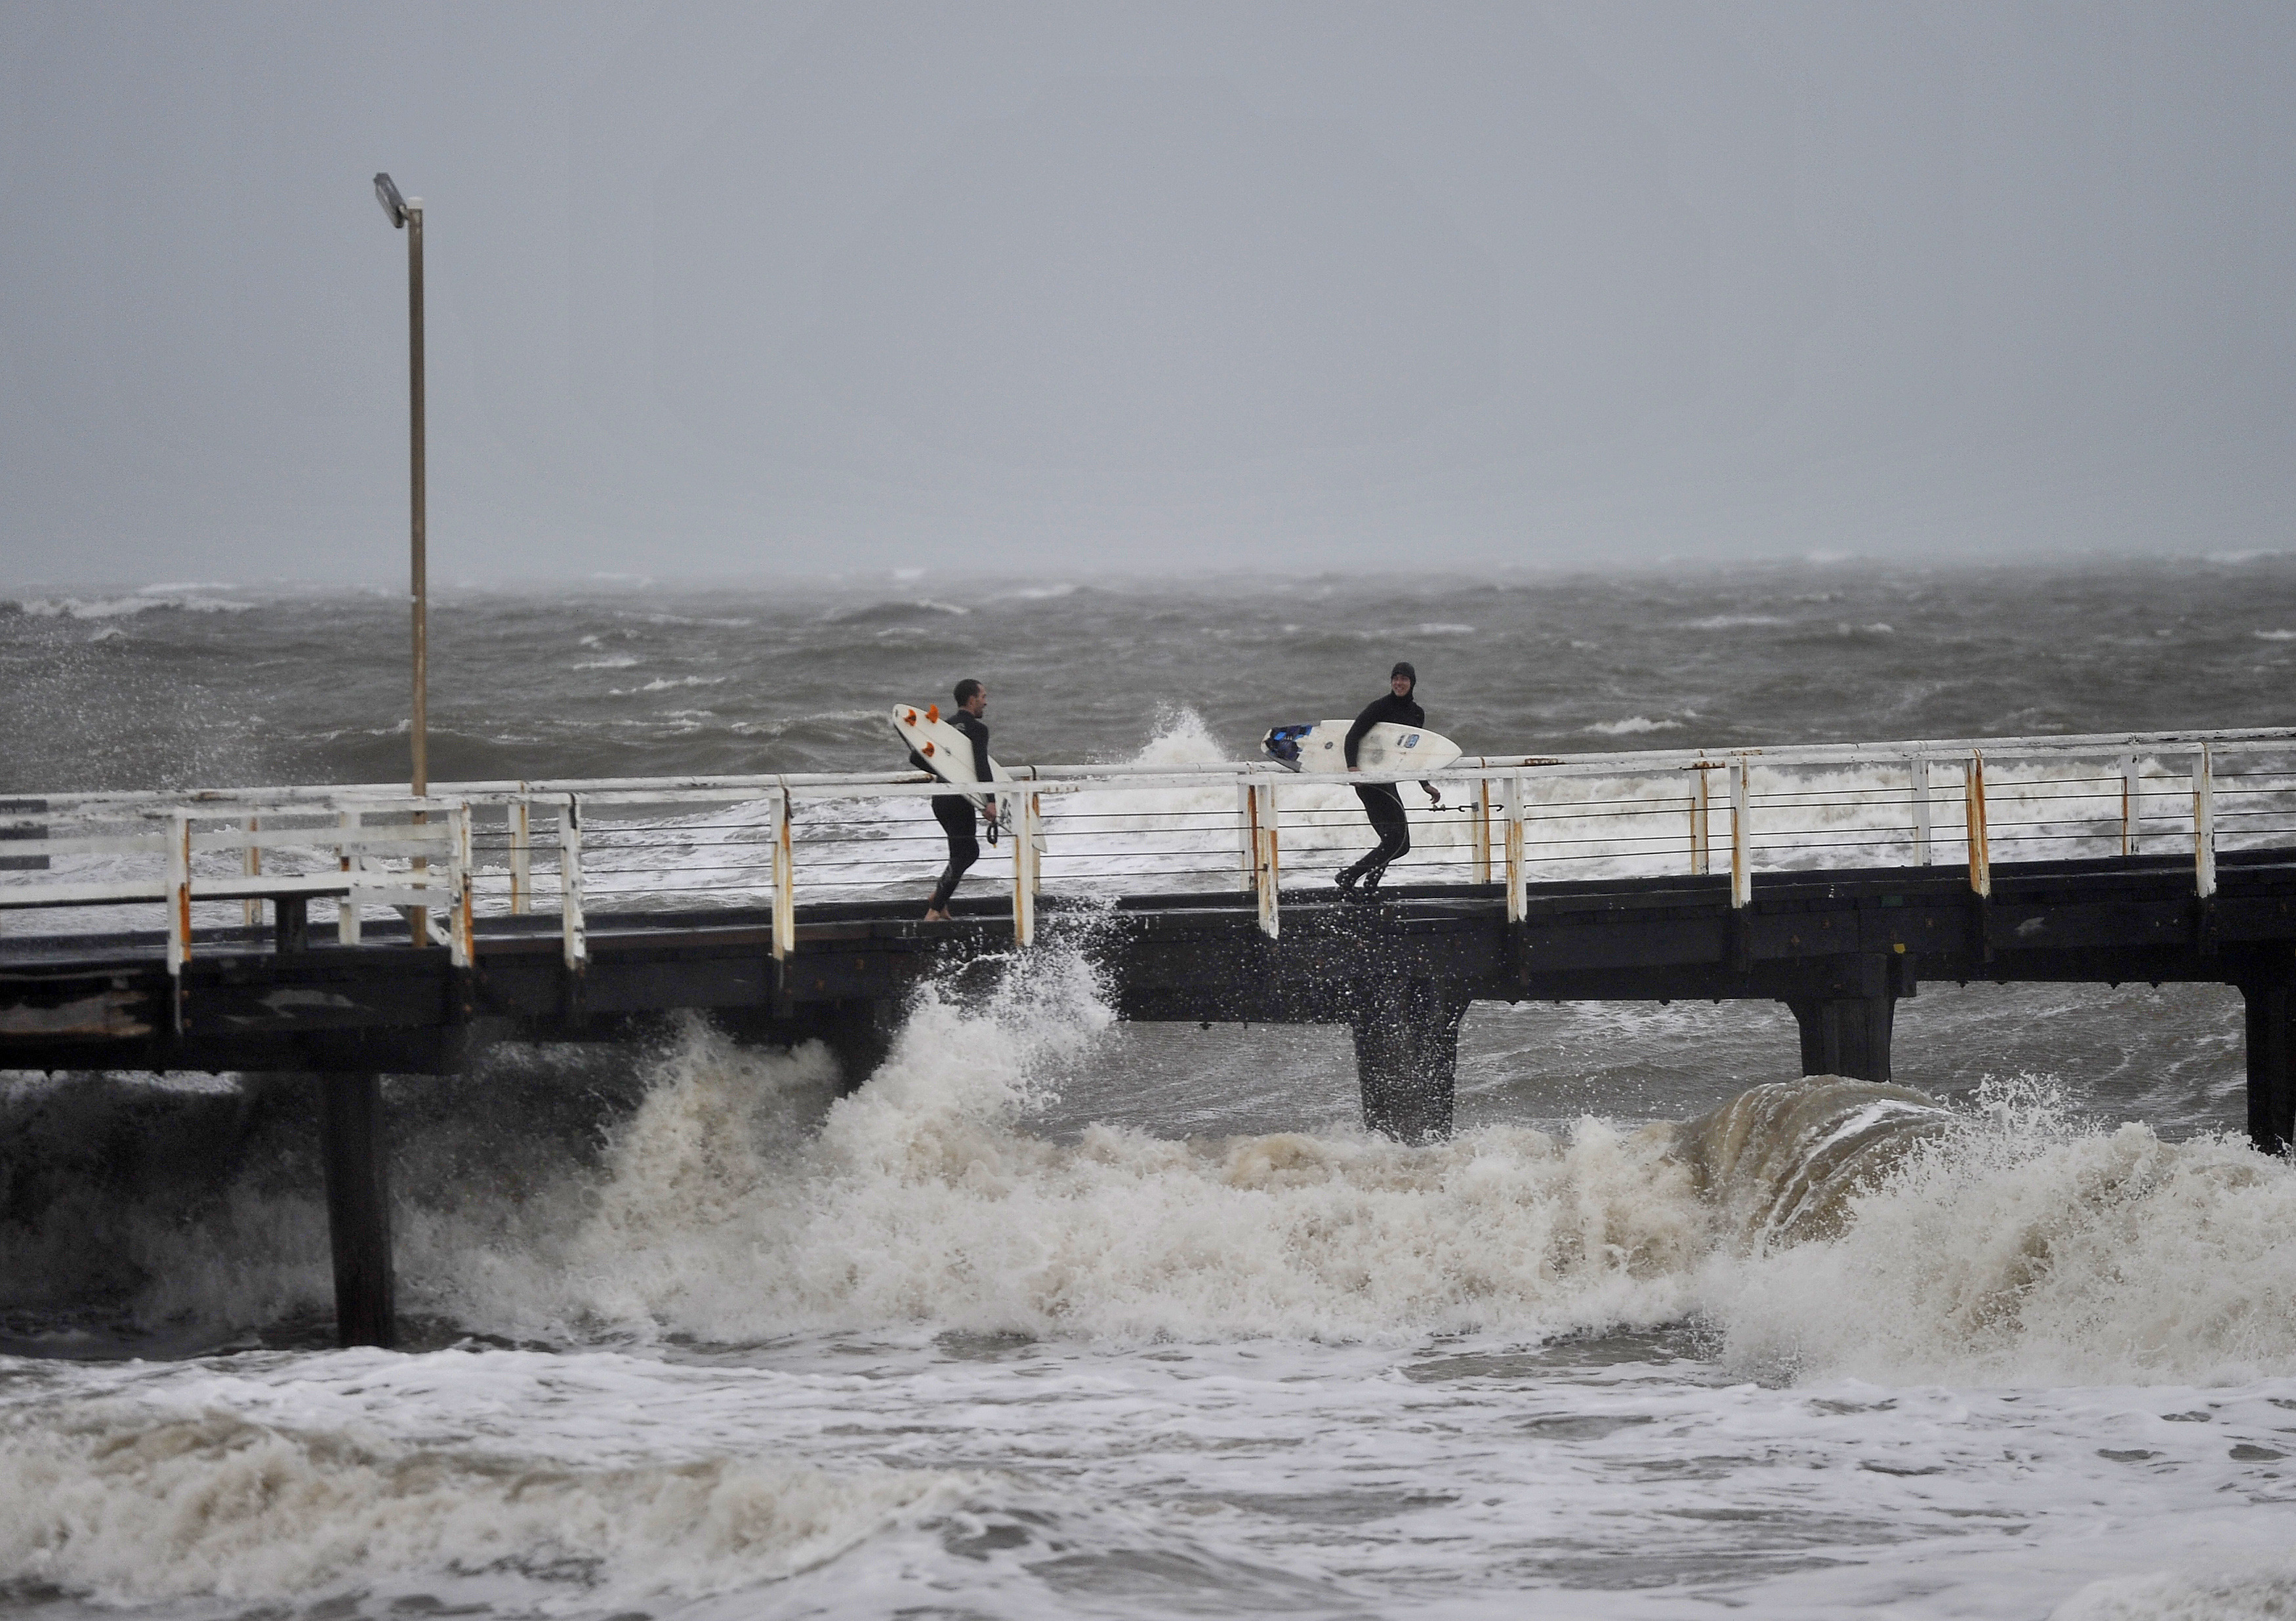 Surfers on a jetty look to jump into the waves that have been created by a storm front on Adelaide metropolitan beaches. Photo: AAP/David Mariuz